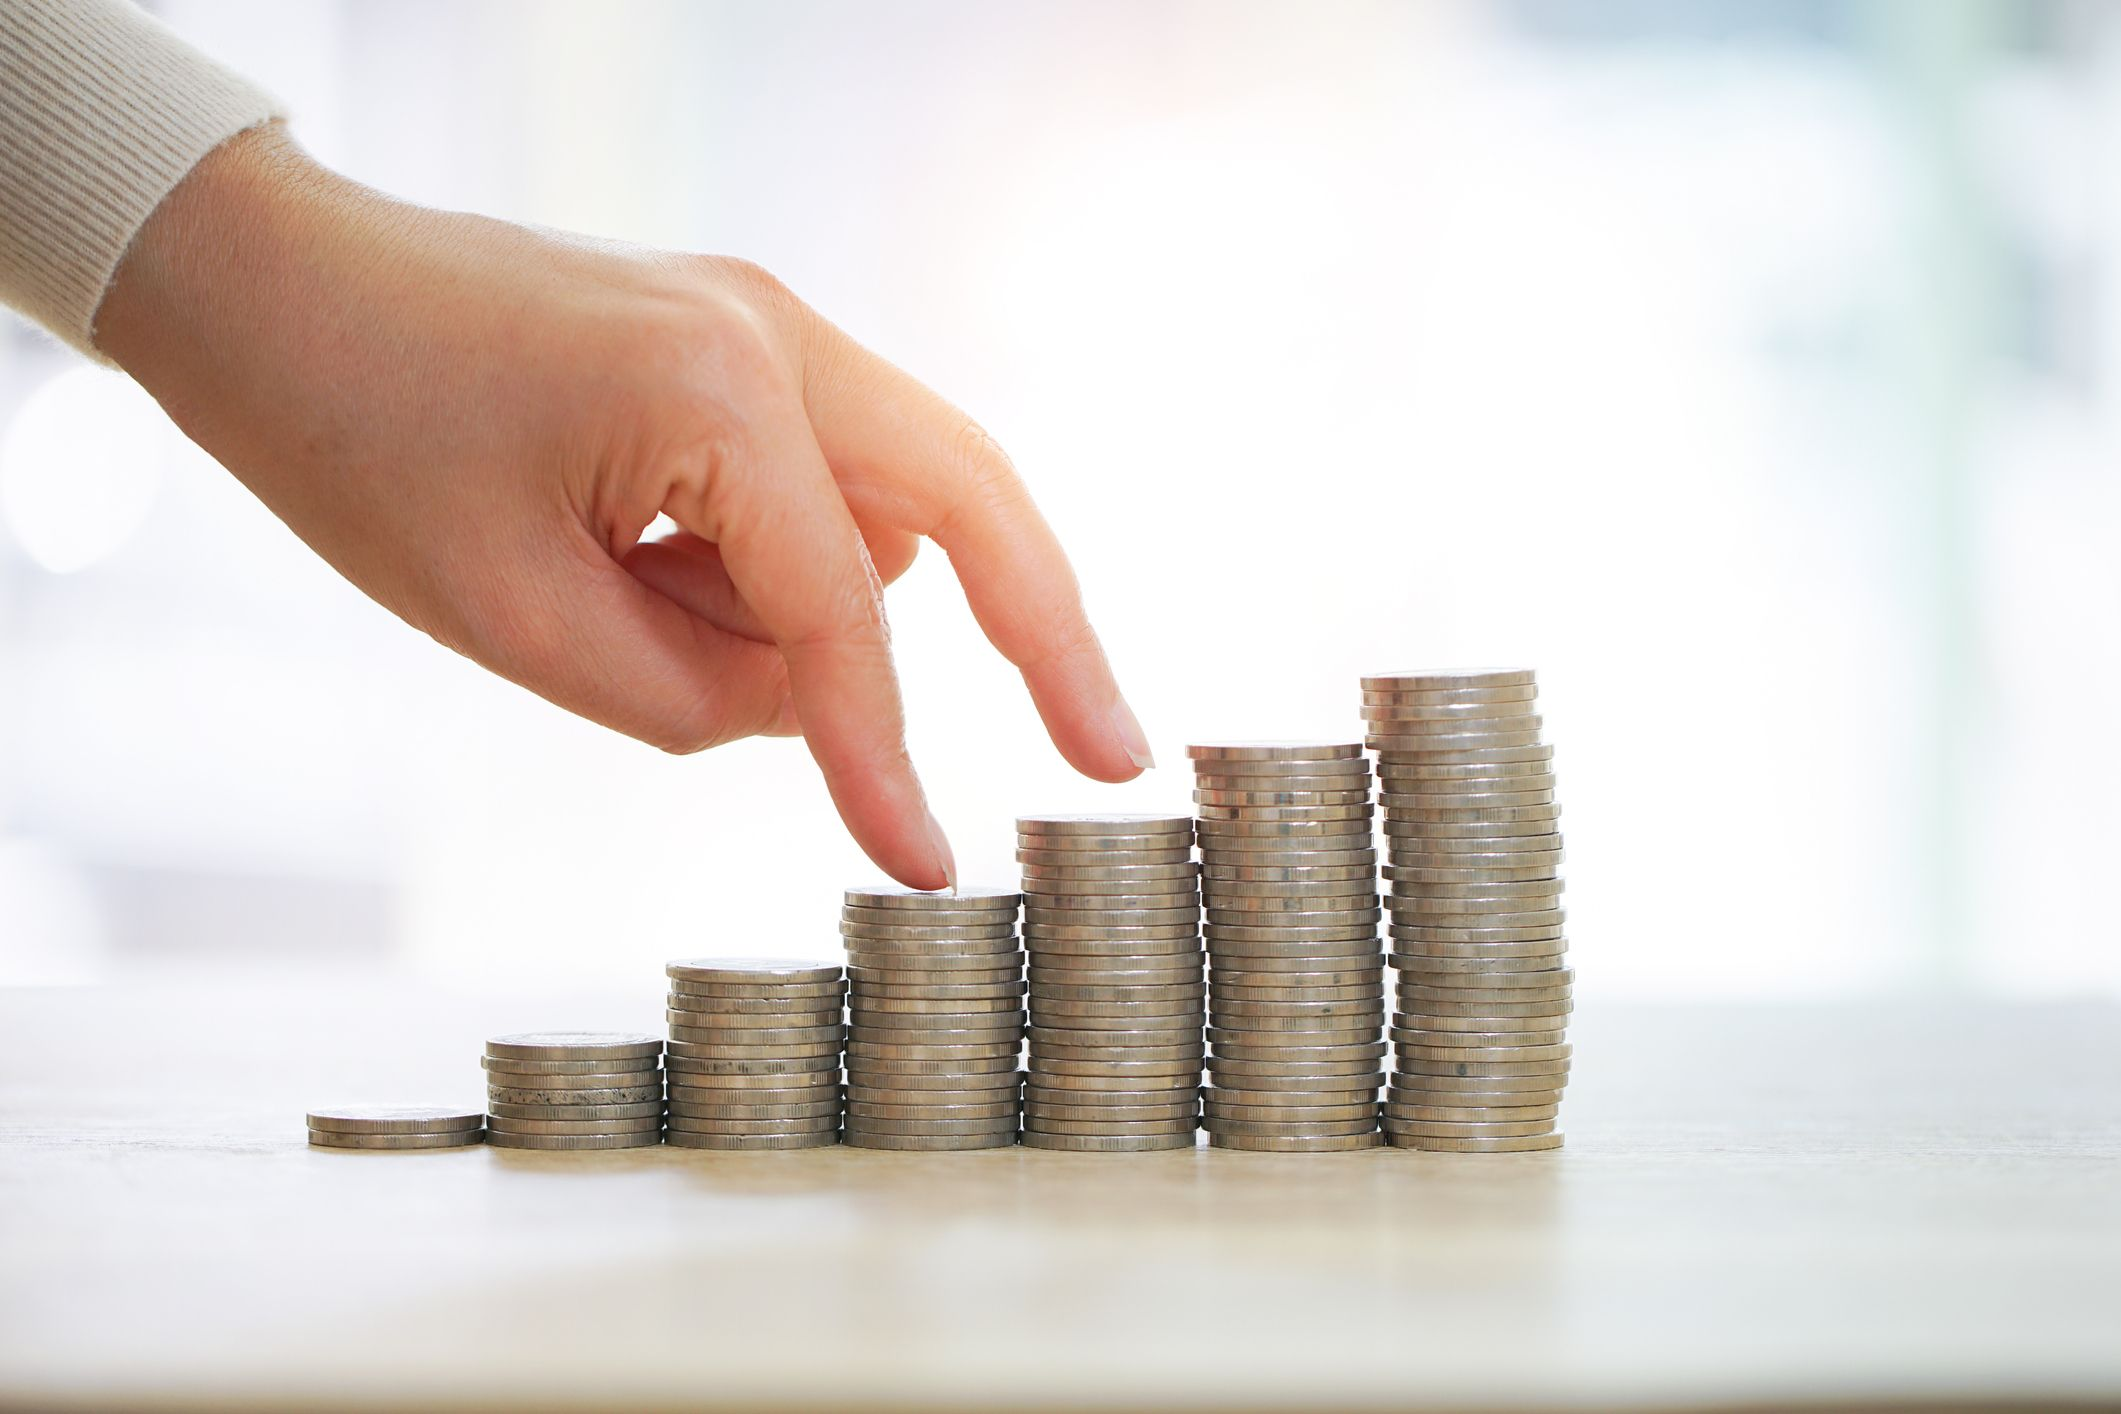 4 ways to manage your finances better